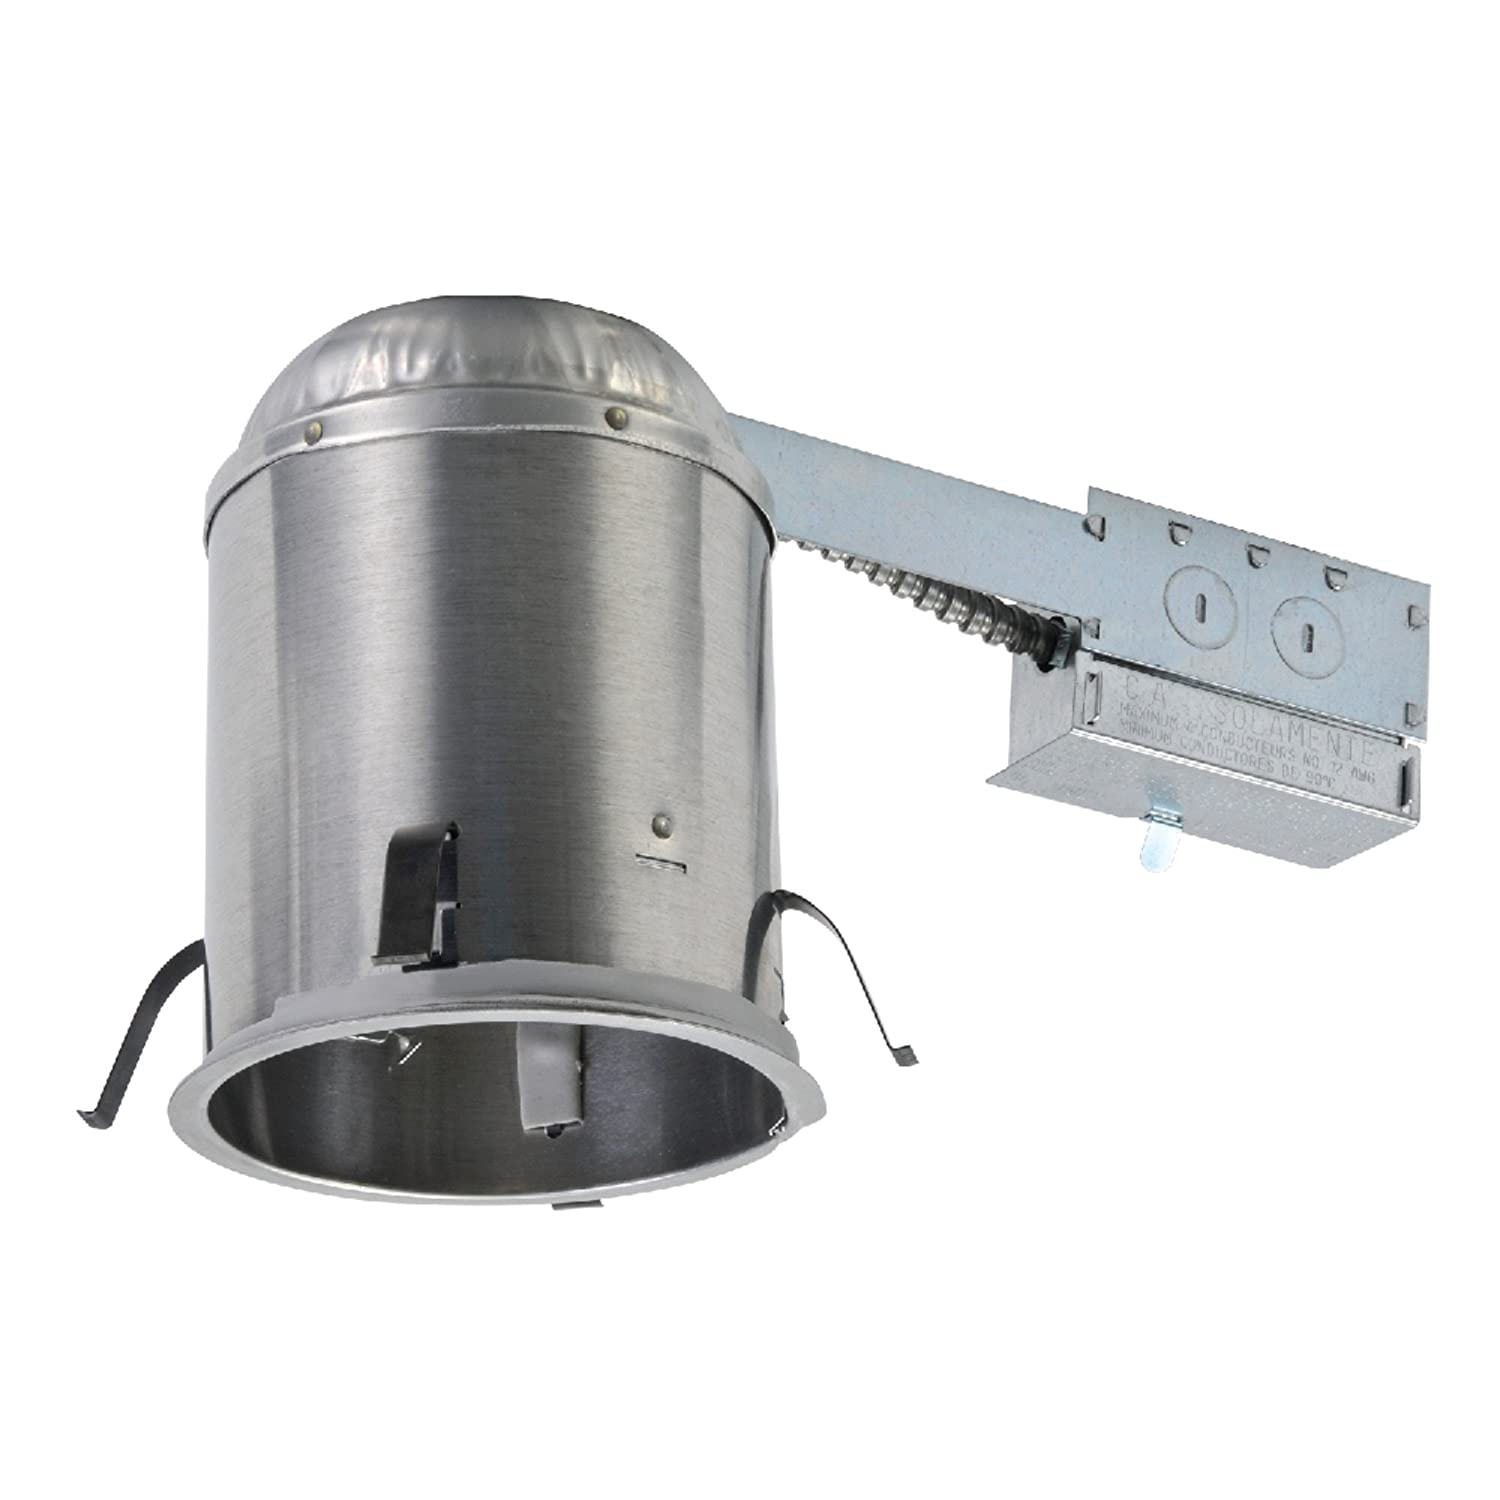 Amazon.com: Halo H5RICAT Recessed Lighting Remodel IC Air-Tite ...